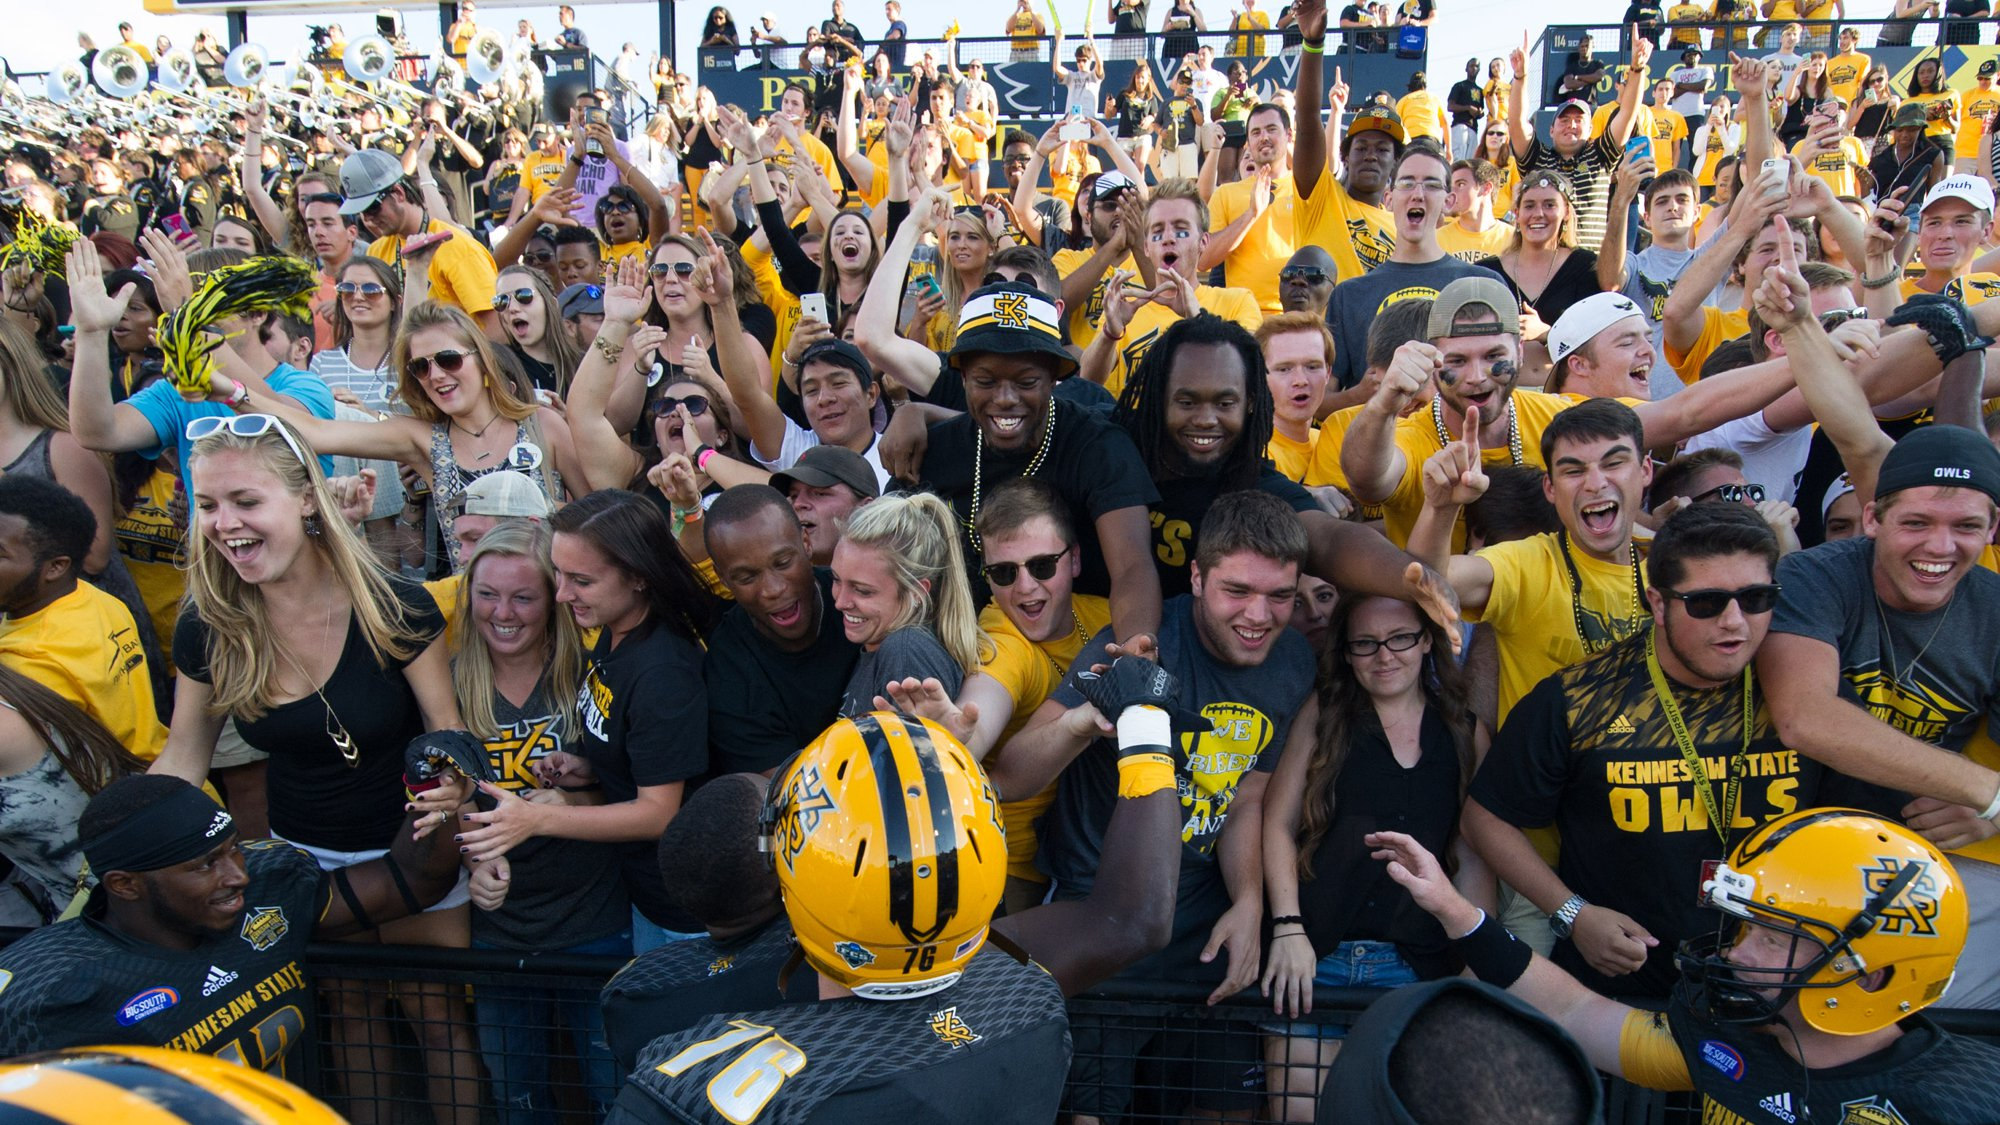 Kennesaw state 2